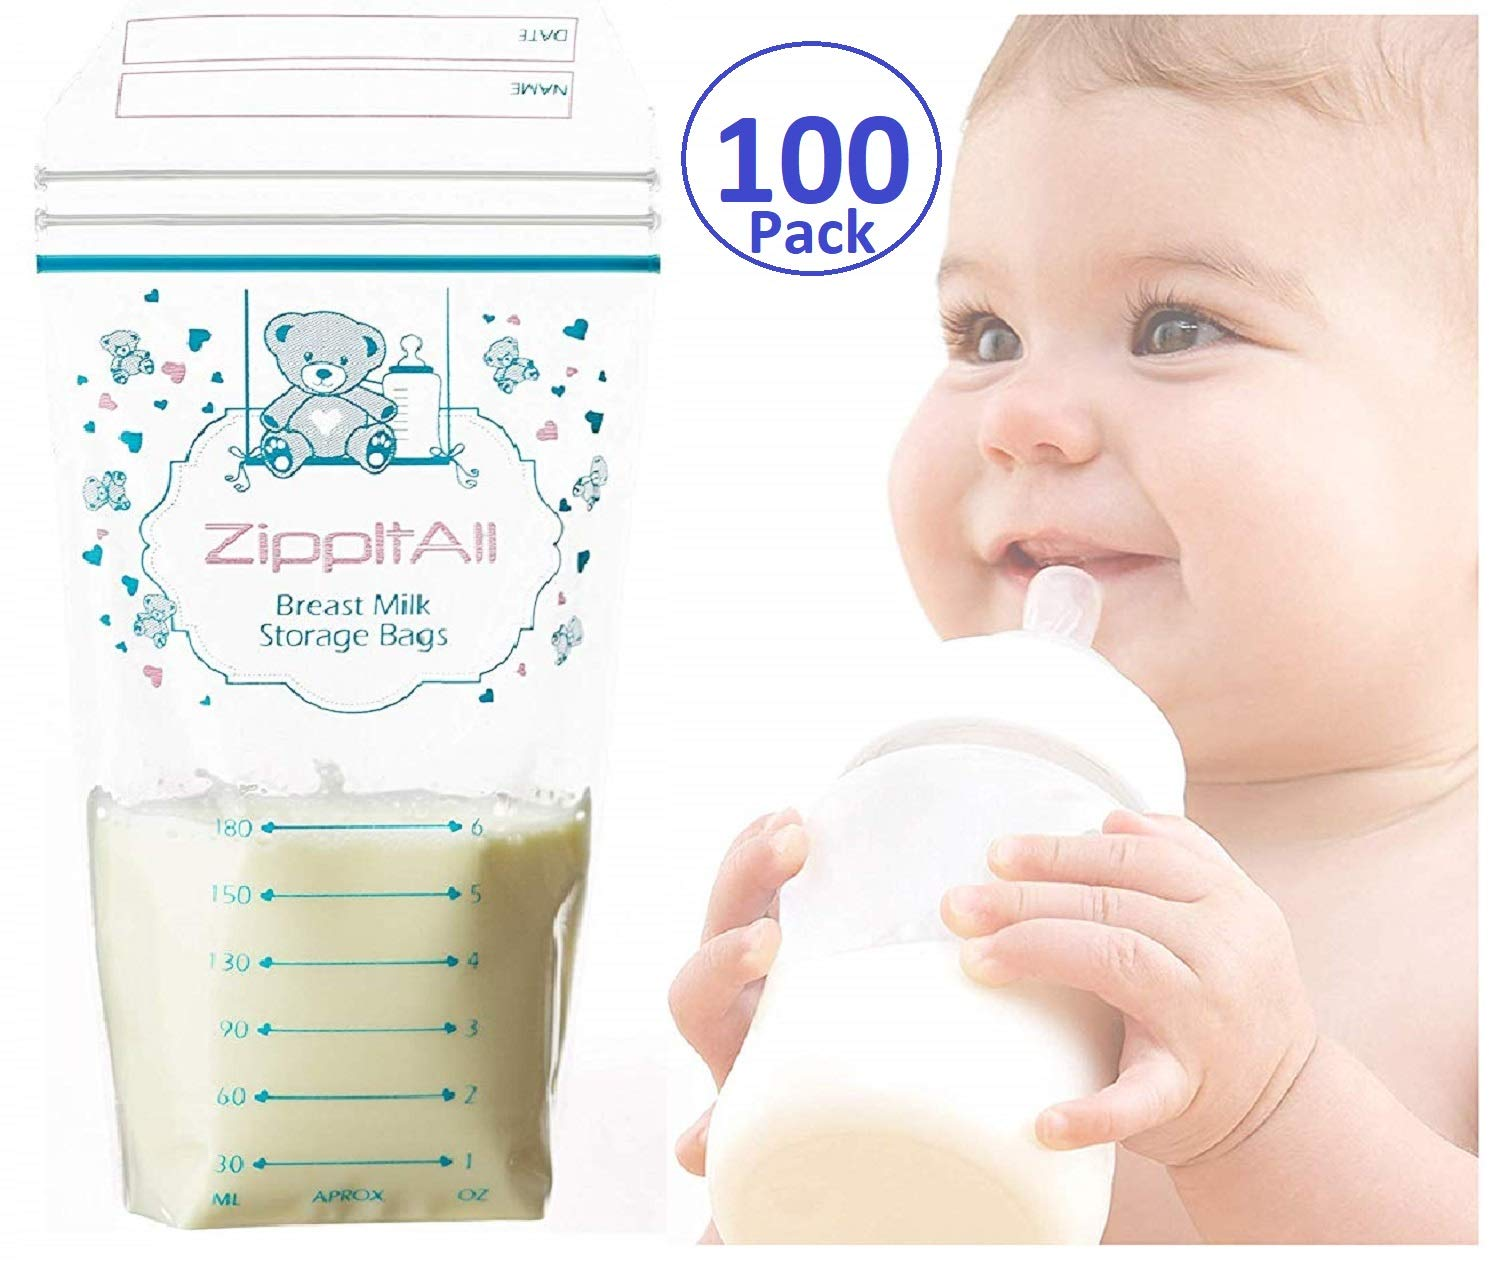 DiRose Breast Milk Storage Bags - Leak-Proof 100 Count Double Zipper 6 oz Capacity Extra Thick and Seal BPA/BPS Free/Disposable Pouches | Self-Standing Bag for Long and Safe Storing by DiRose